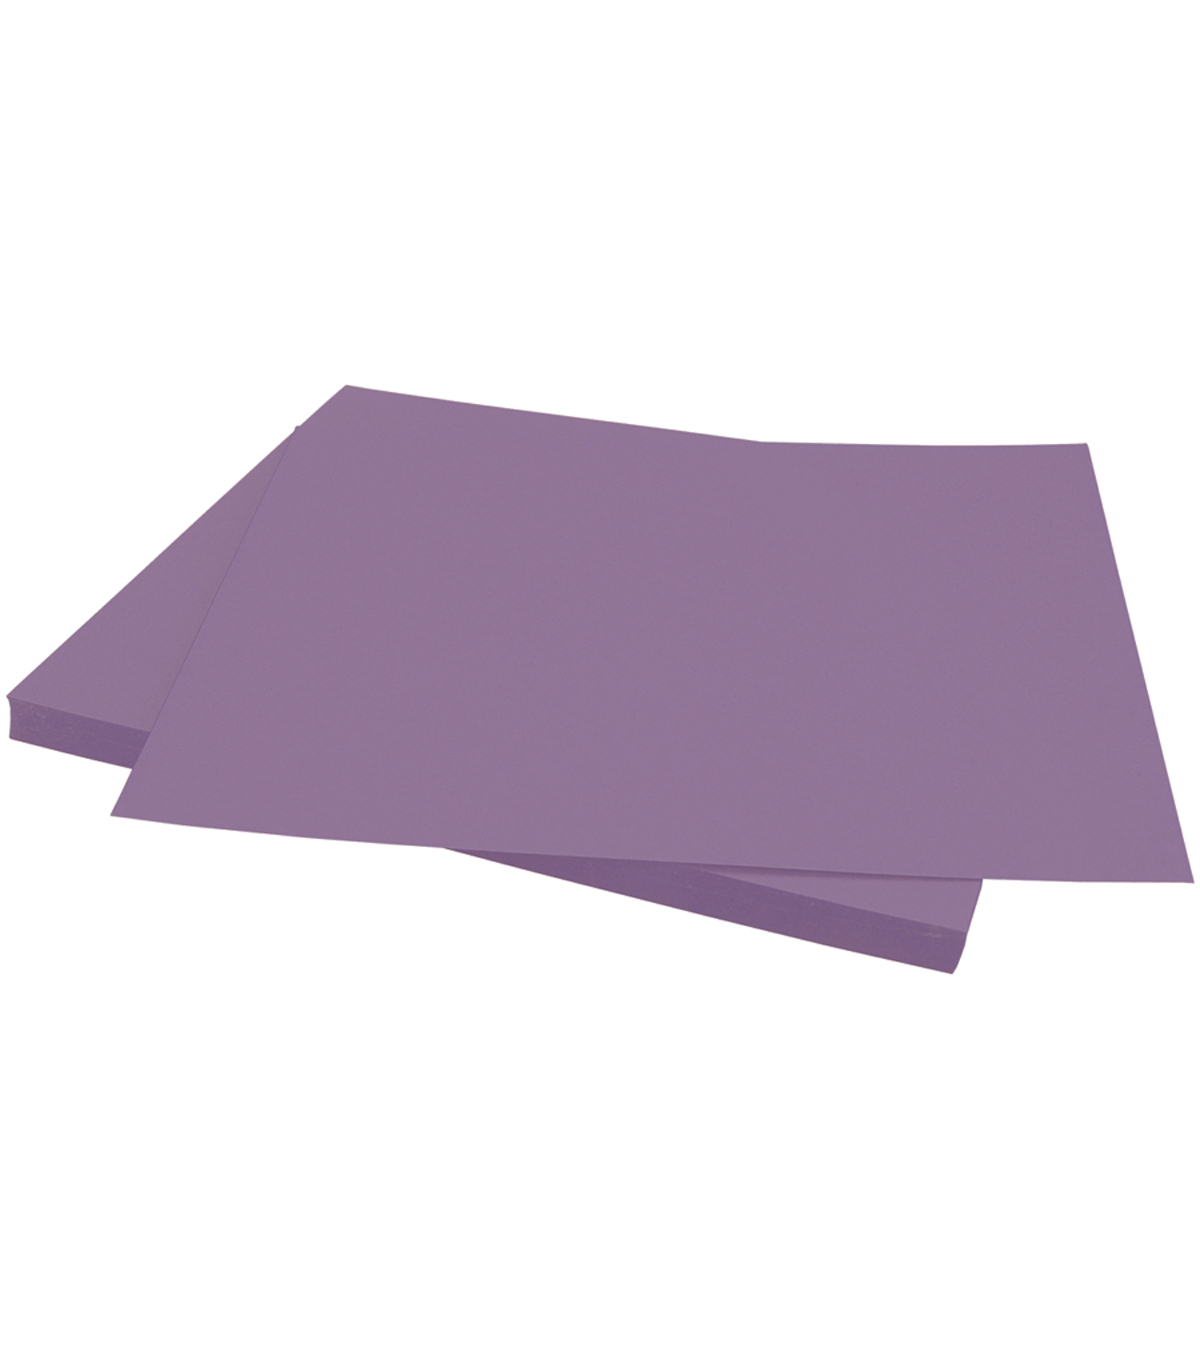 Cream colored cardstock paper studio - Bazzill 8 1 2 X11 Smoothie Cardstock 25pk